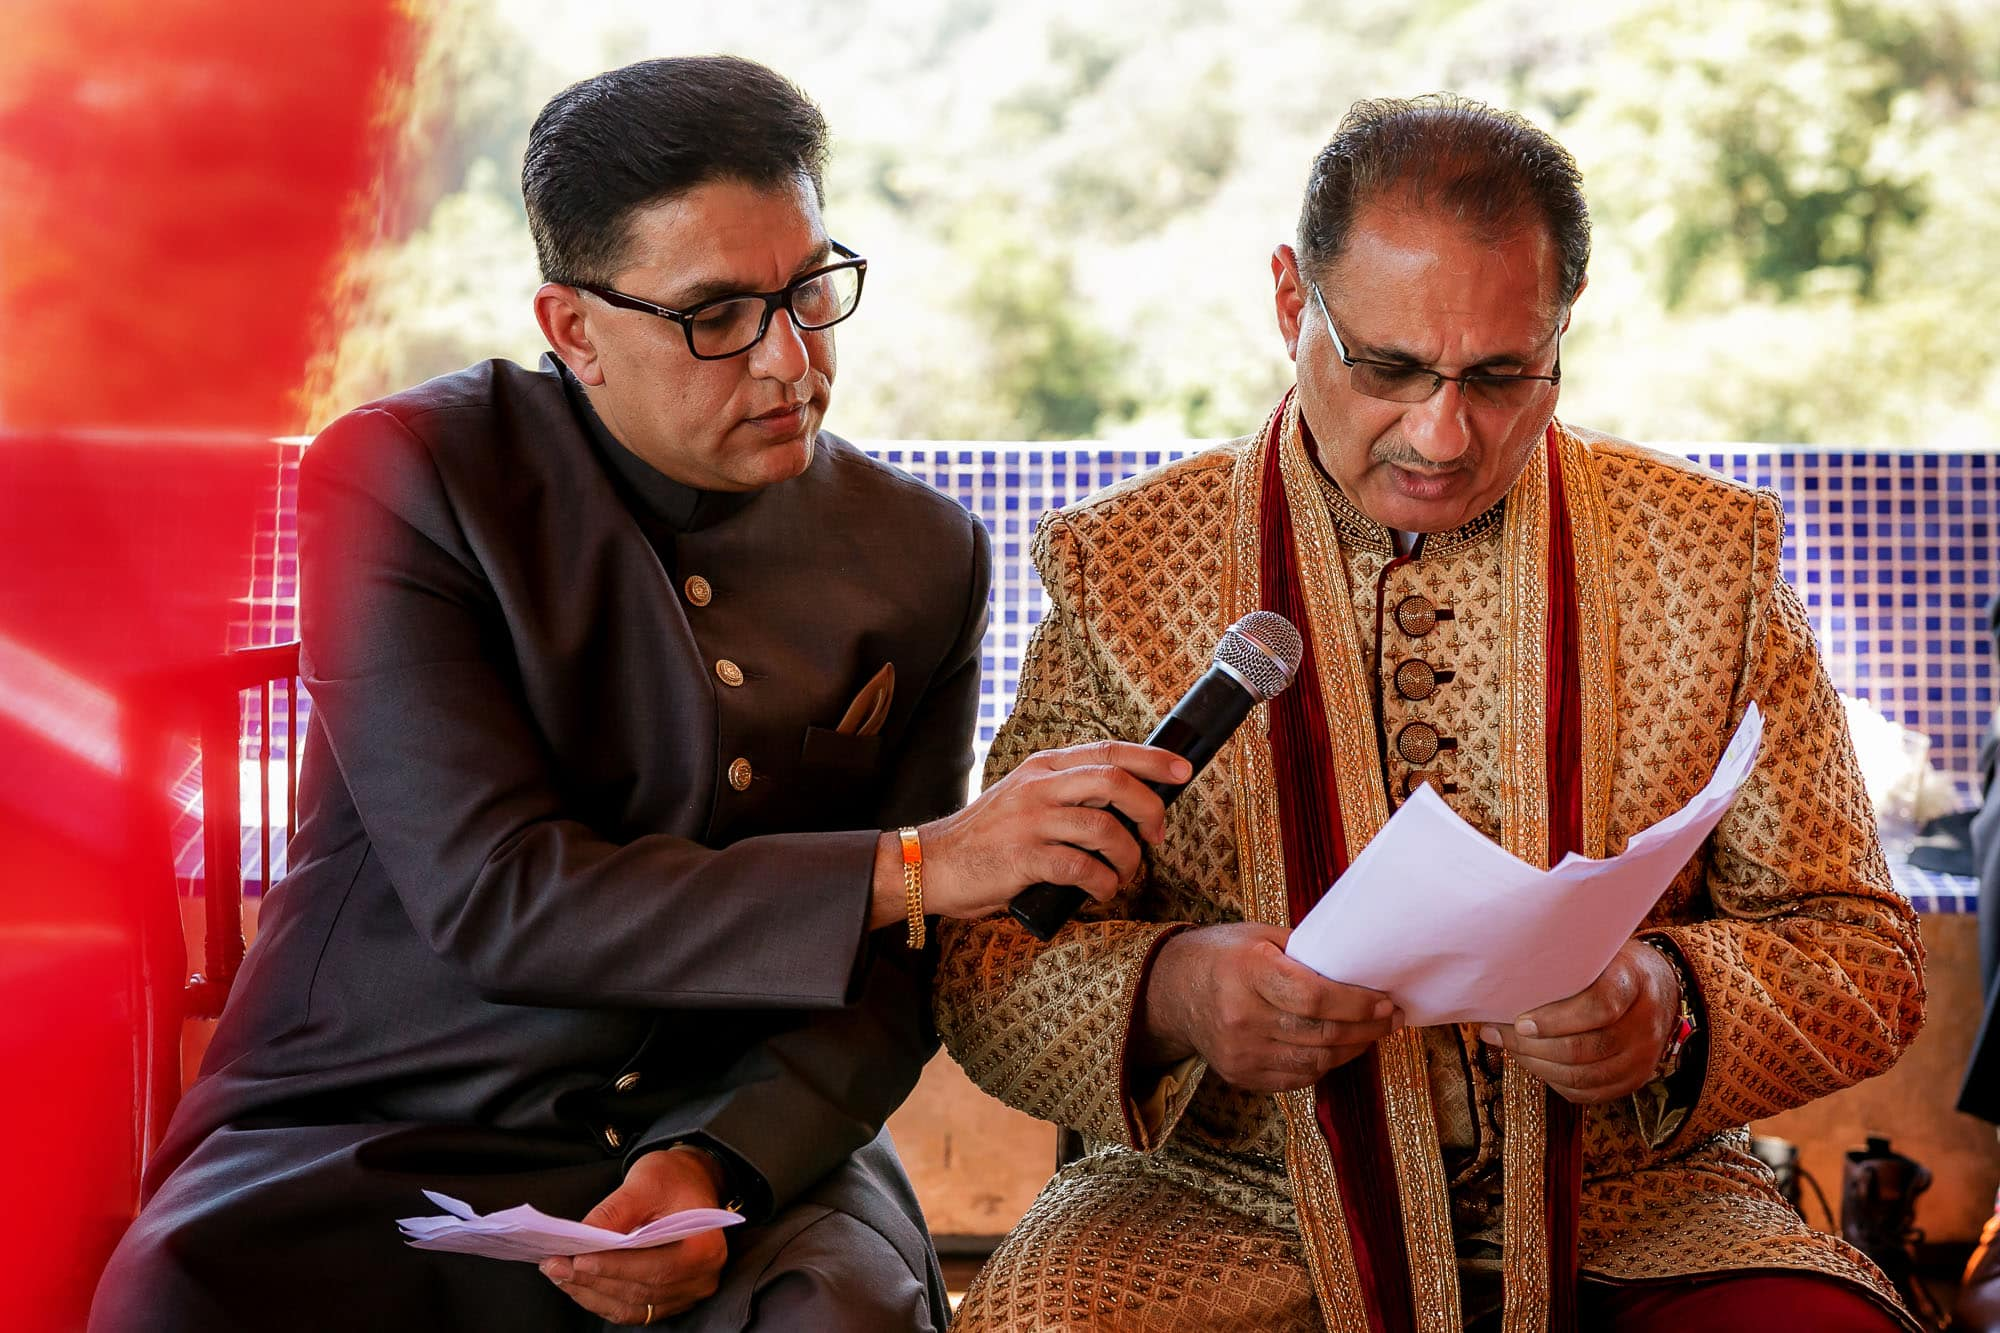 Reading as part of the groom's Muslim tradition